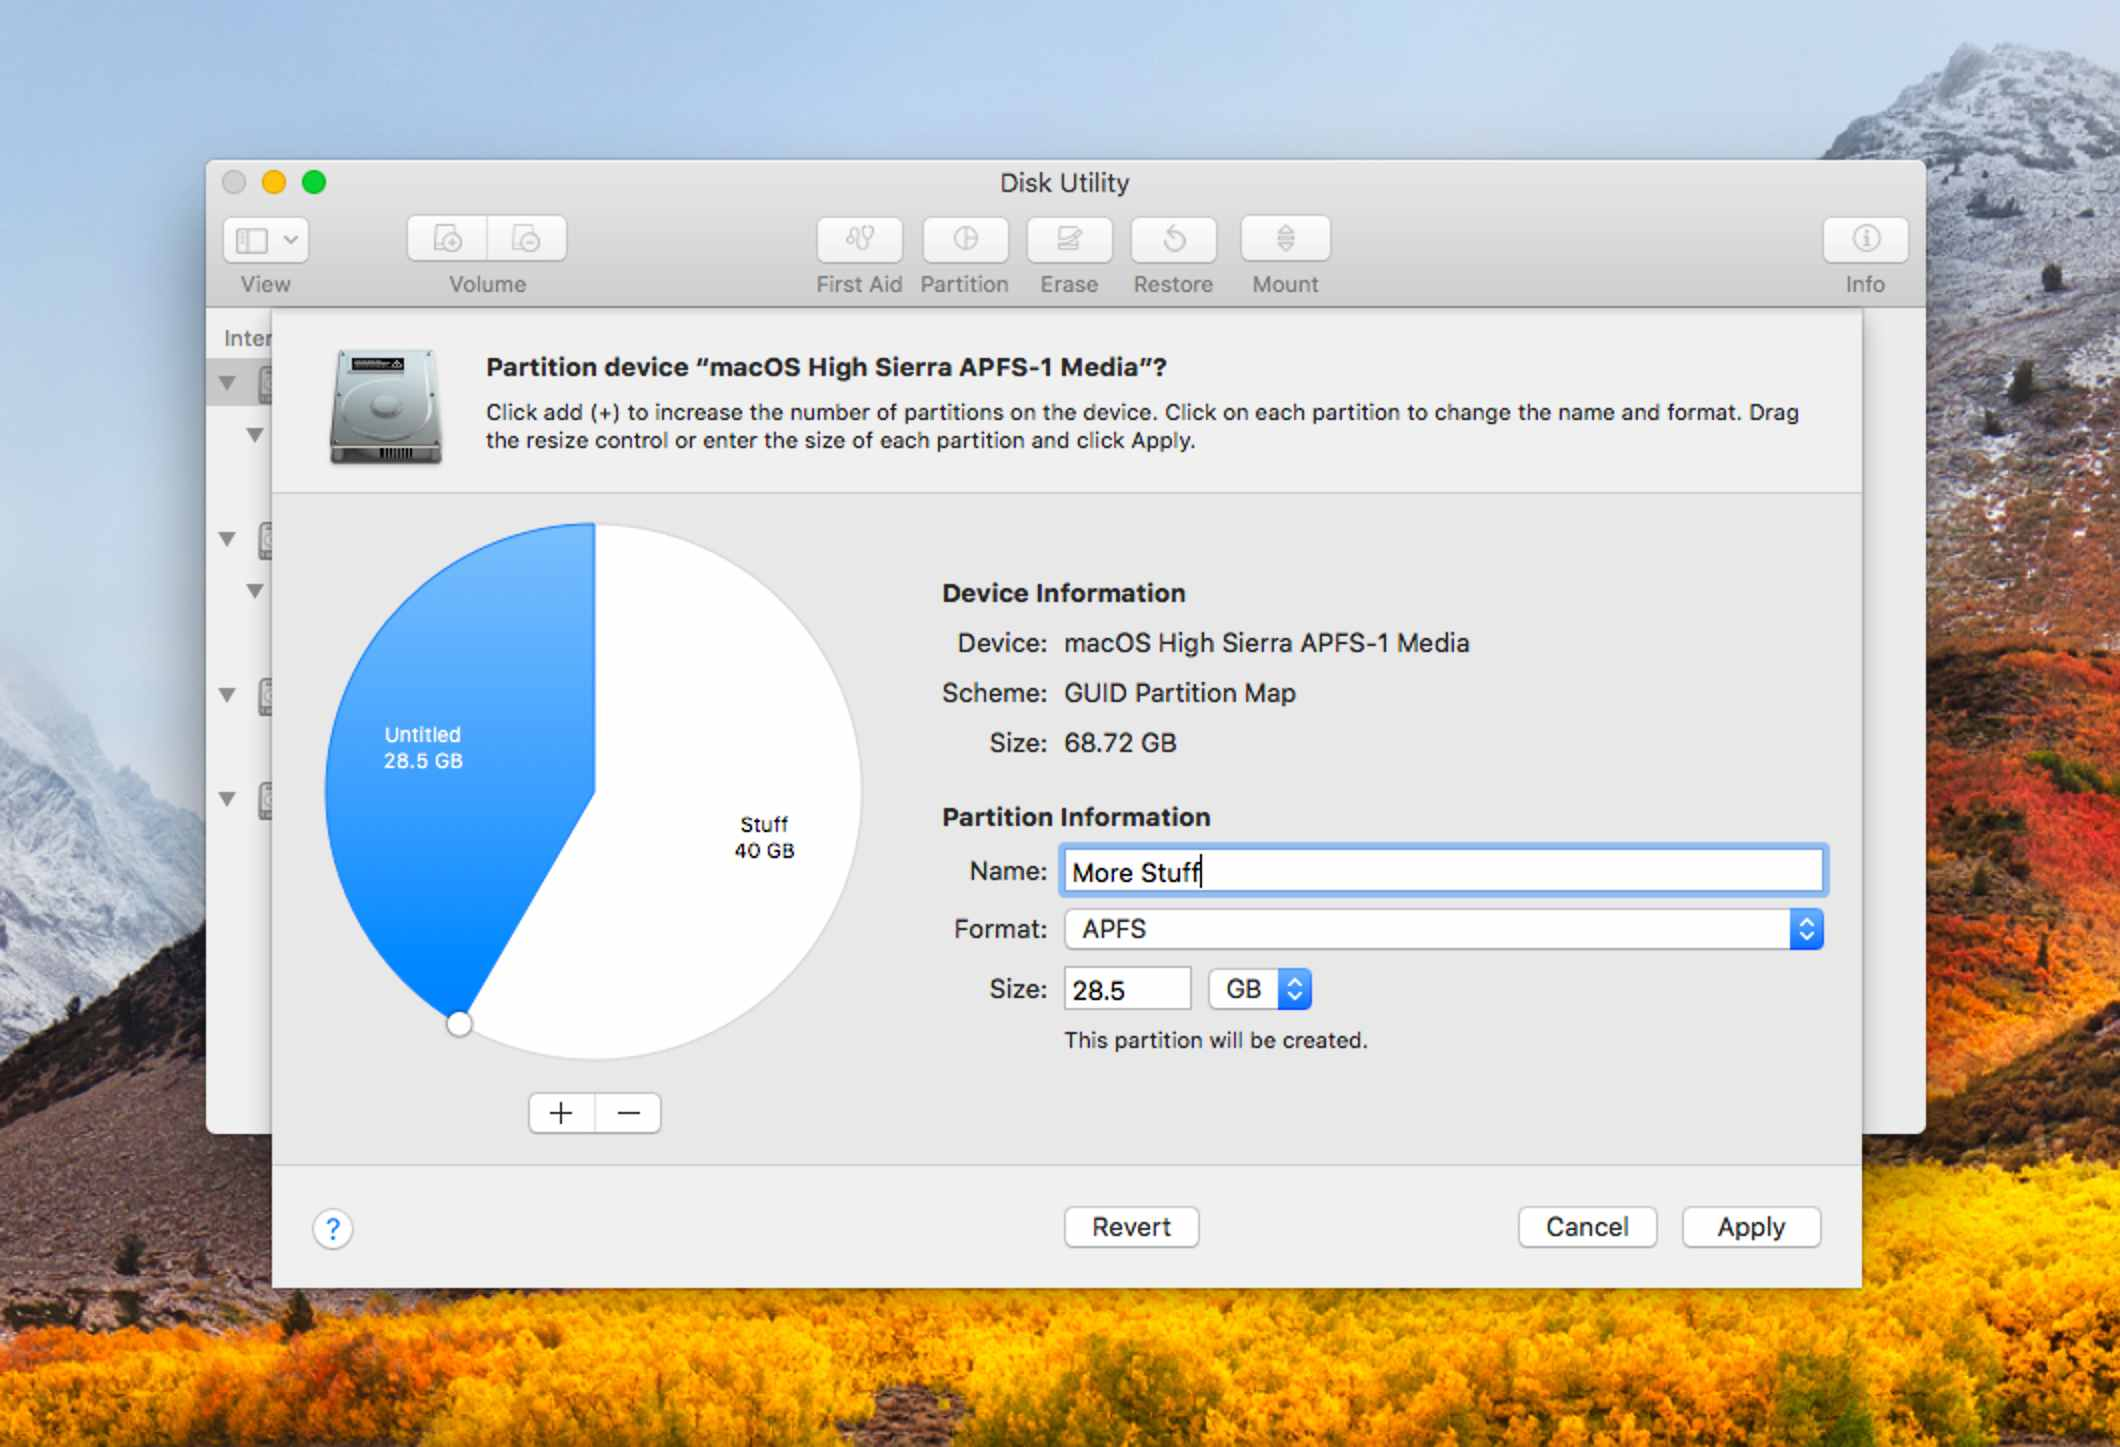 How to Manage an APFS Formatted Drive